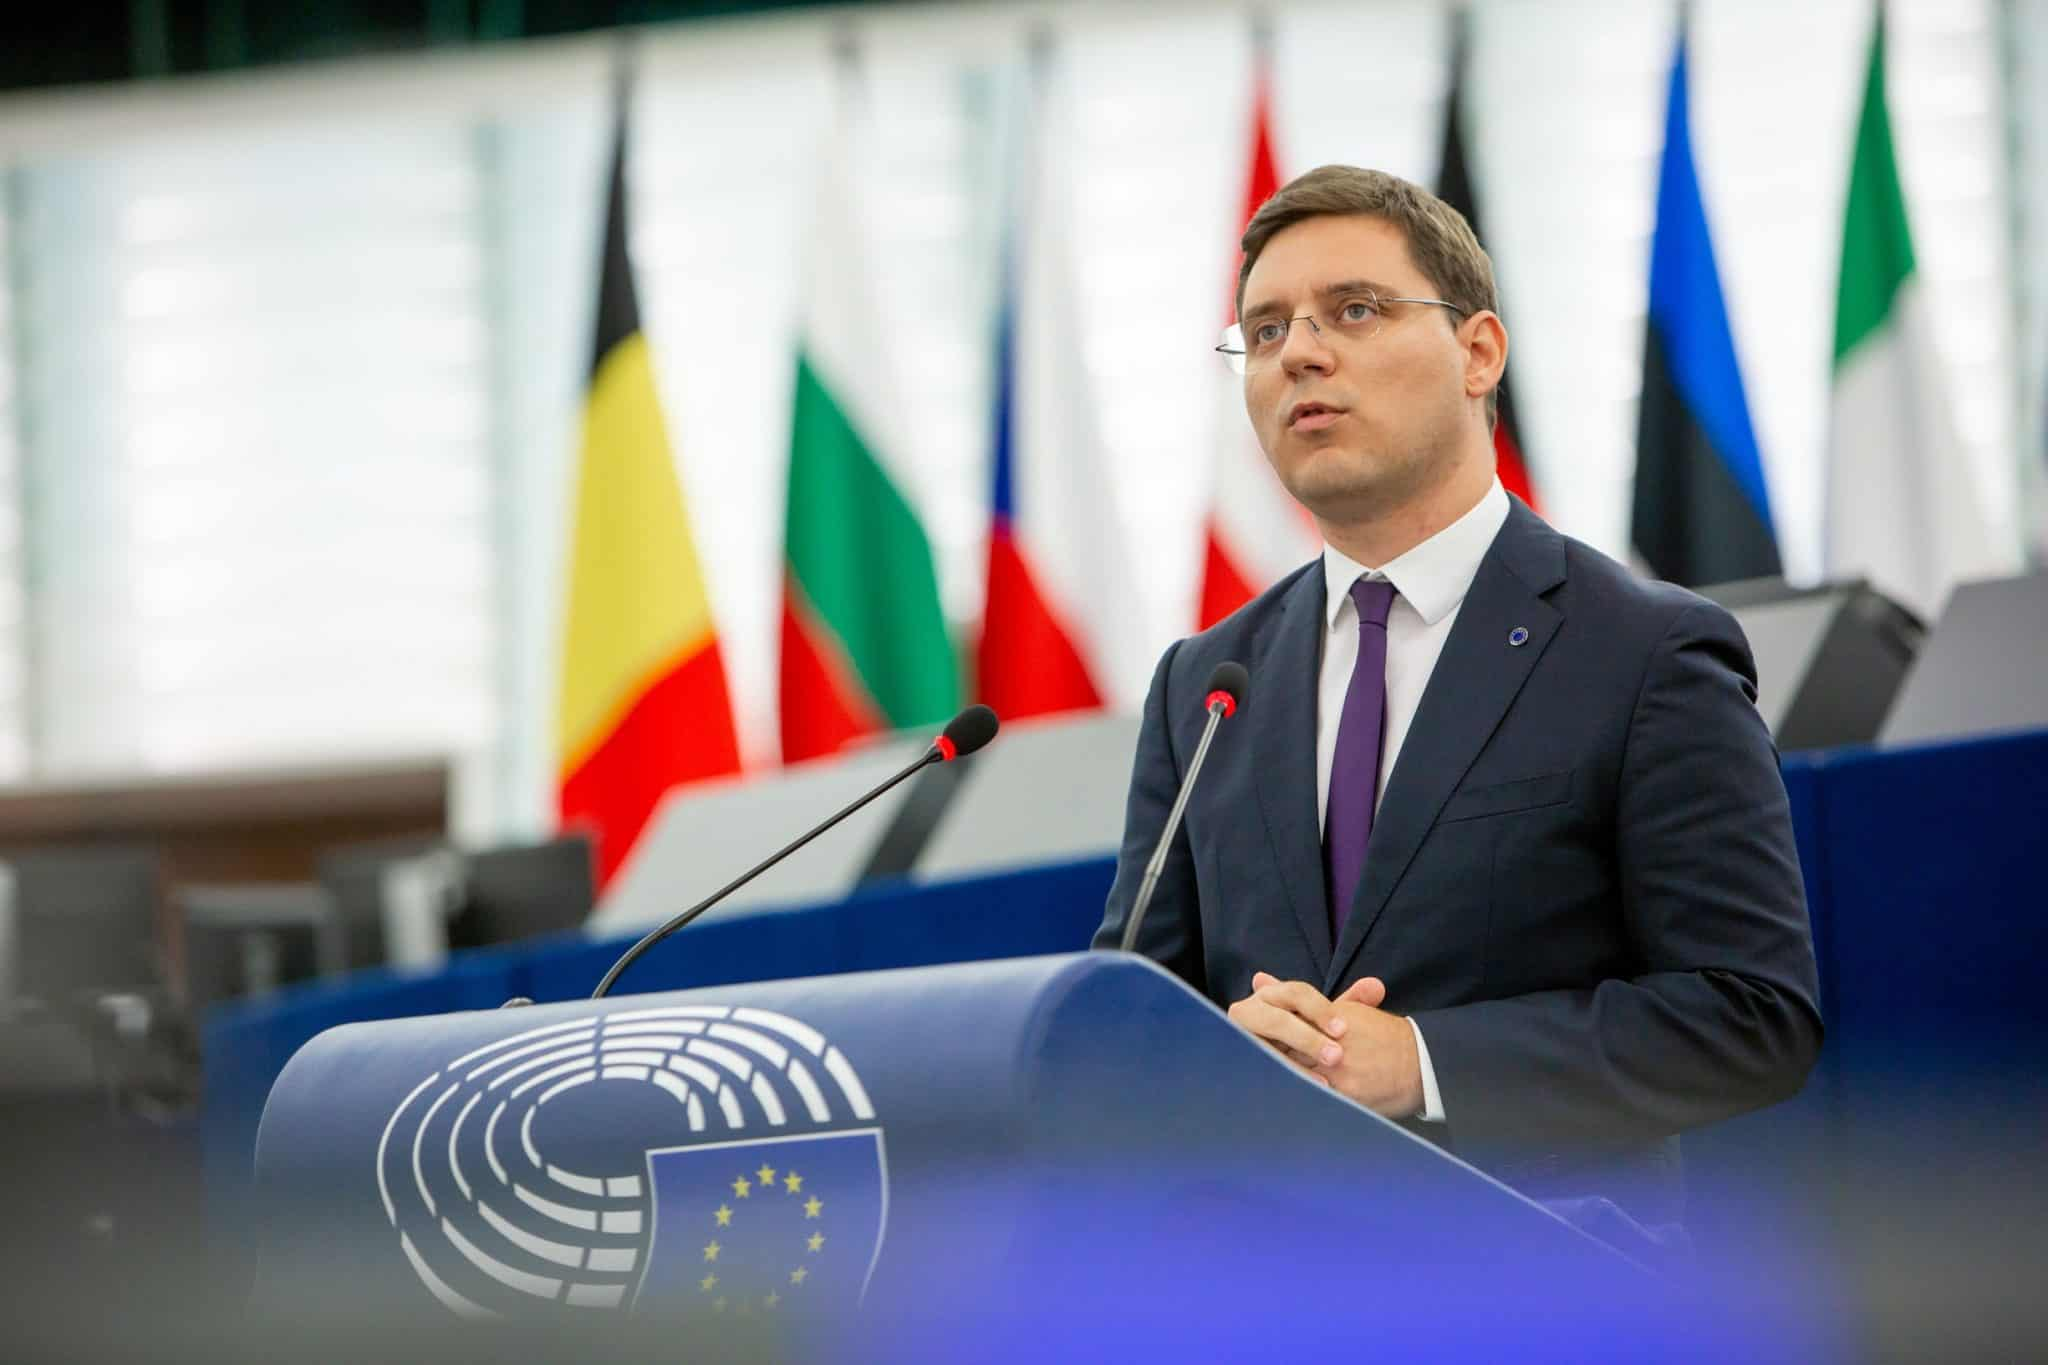 Romanian MEP asks EU for help with UK 'nationality profiling'